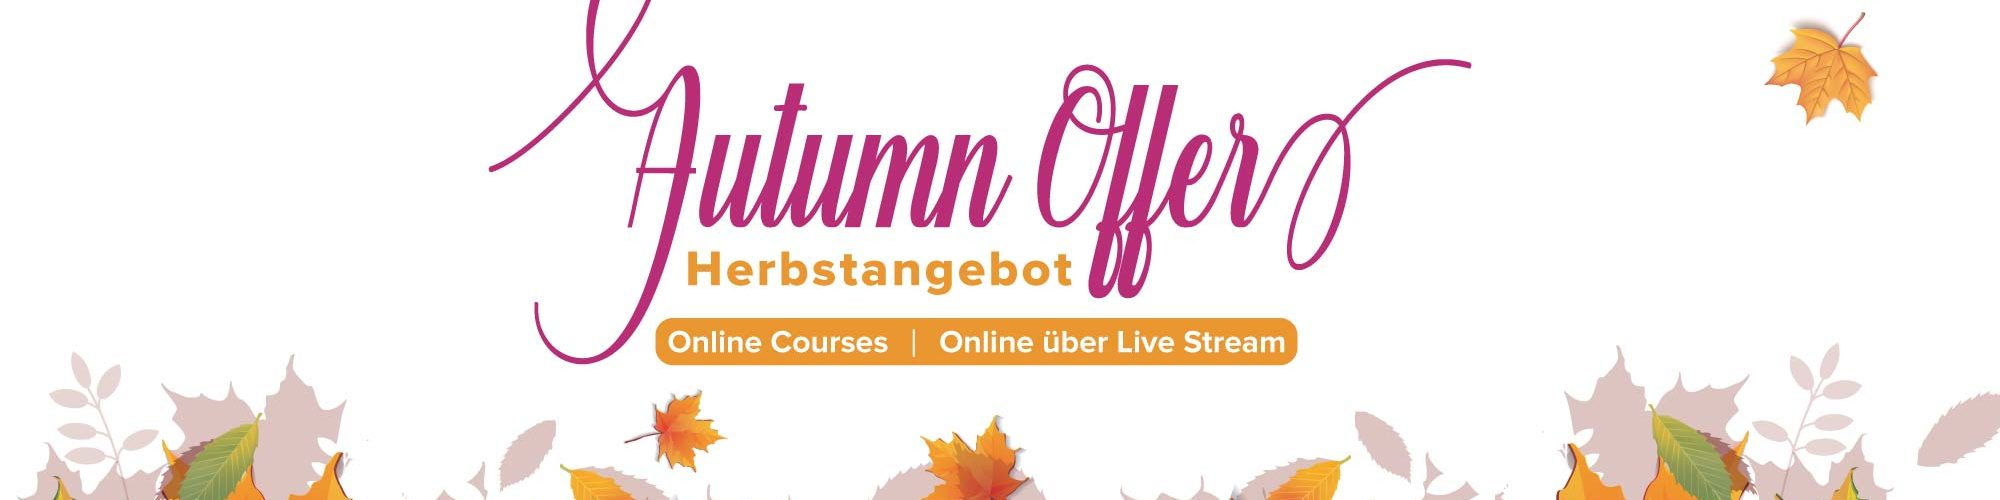 Autumn-offer-FF-website